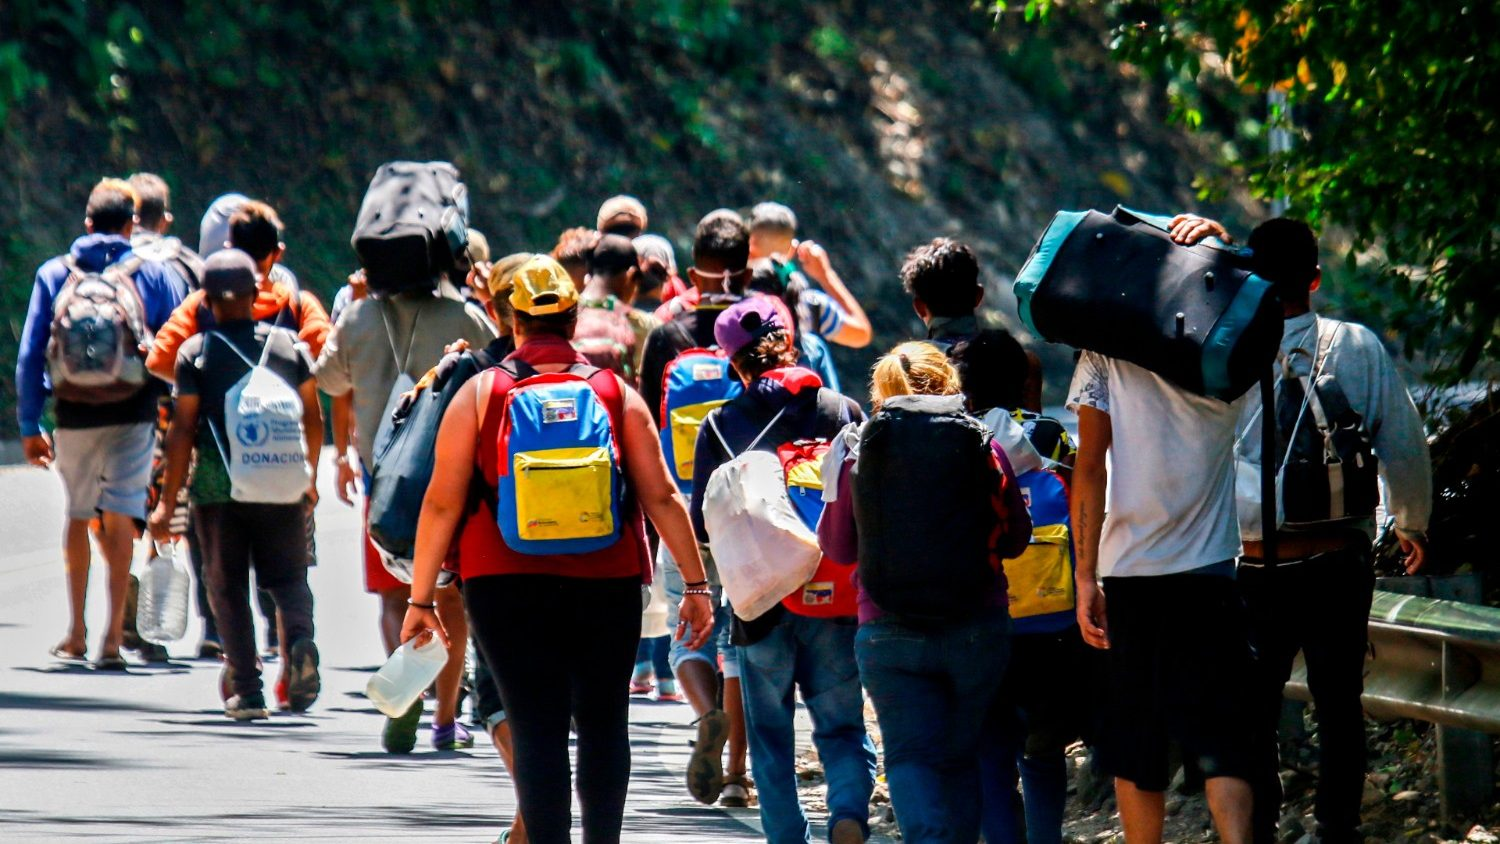 JRS appeals for Colombia to protect Venezuelan migrants